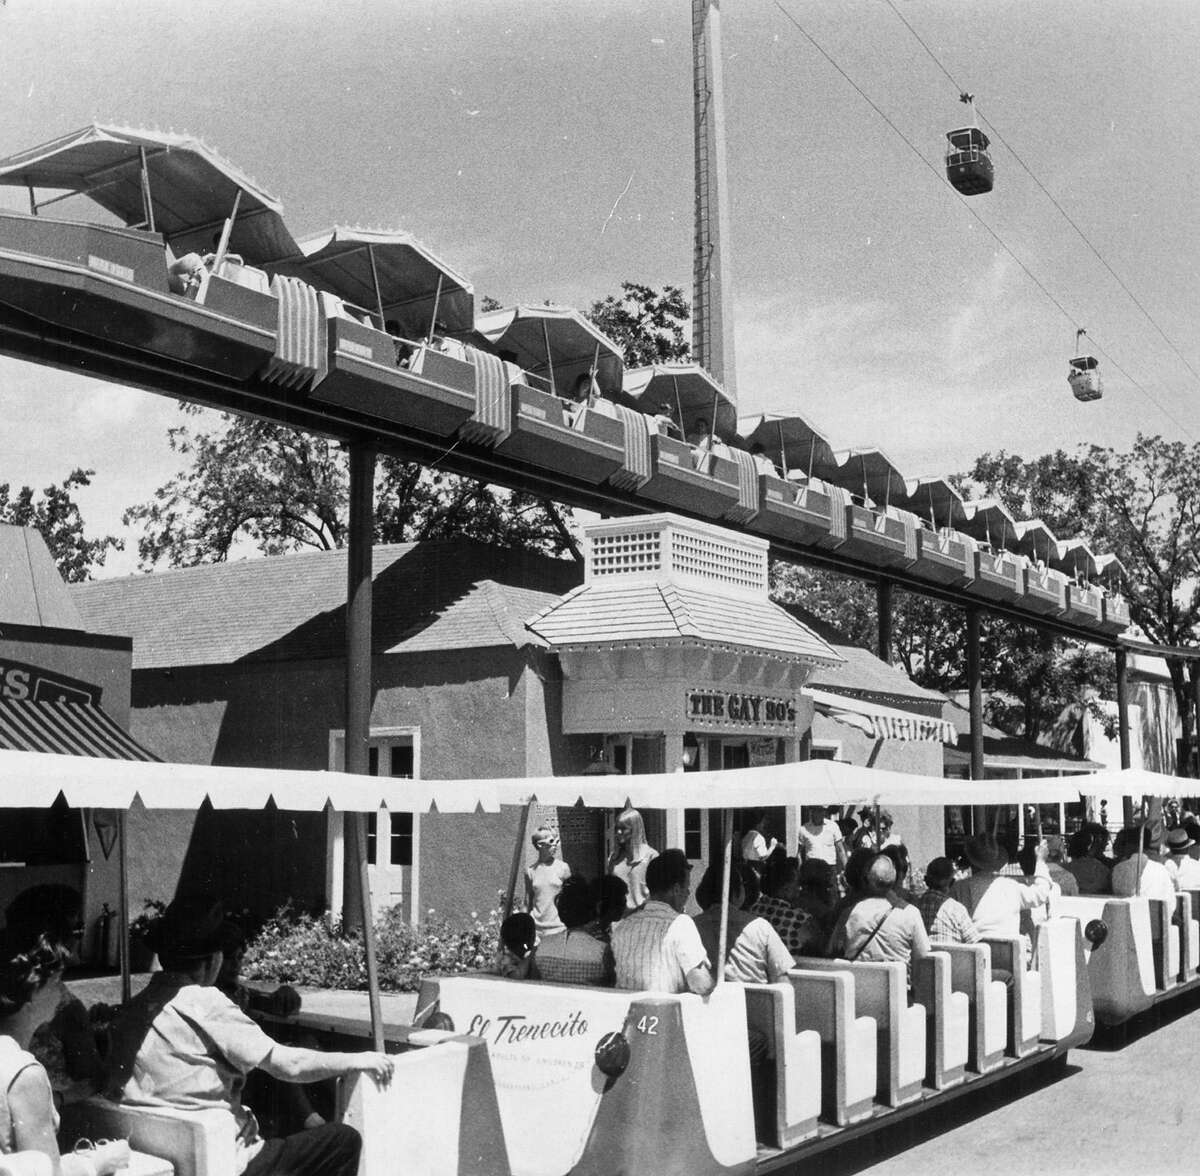 """Among the delights of HemisFair '68 was the mini-monorail. The history of the fair - including the years that led to its opening and the long struggle to figure out what to do with the site after it closed - is explored in """"Viva HemisFair,"""" an exhibit at the Institute of Texan Cultures."""